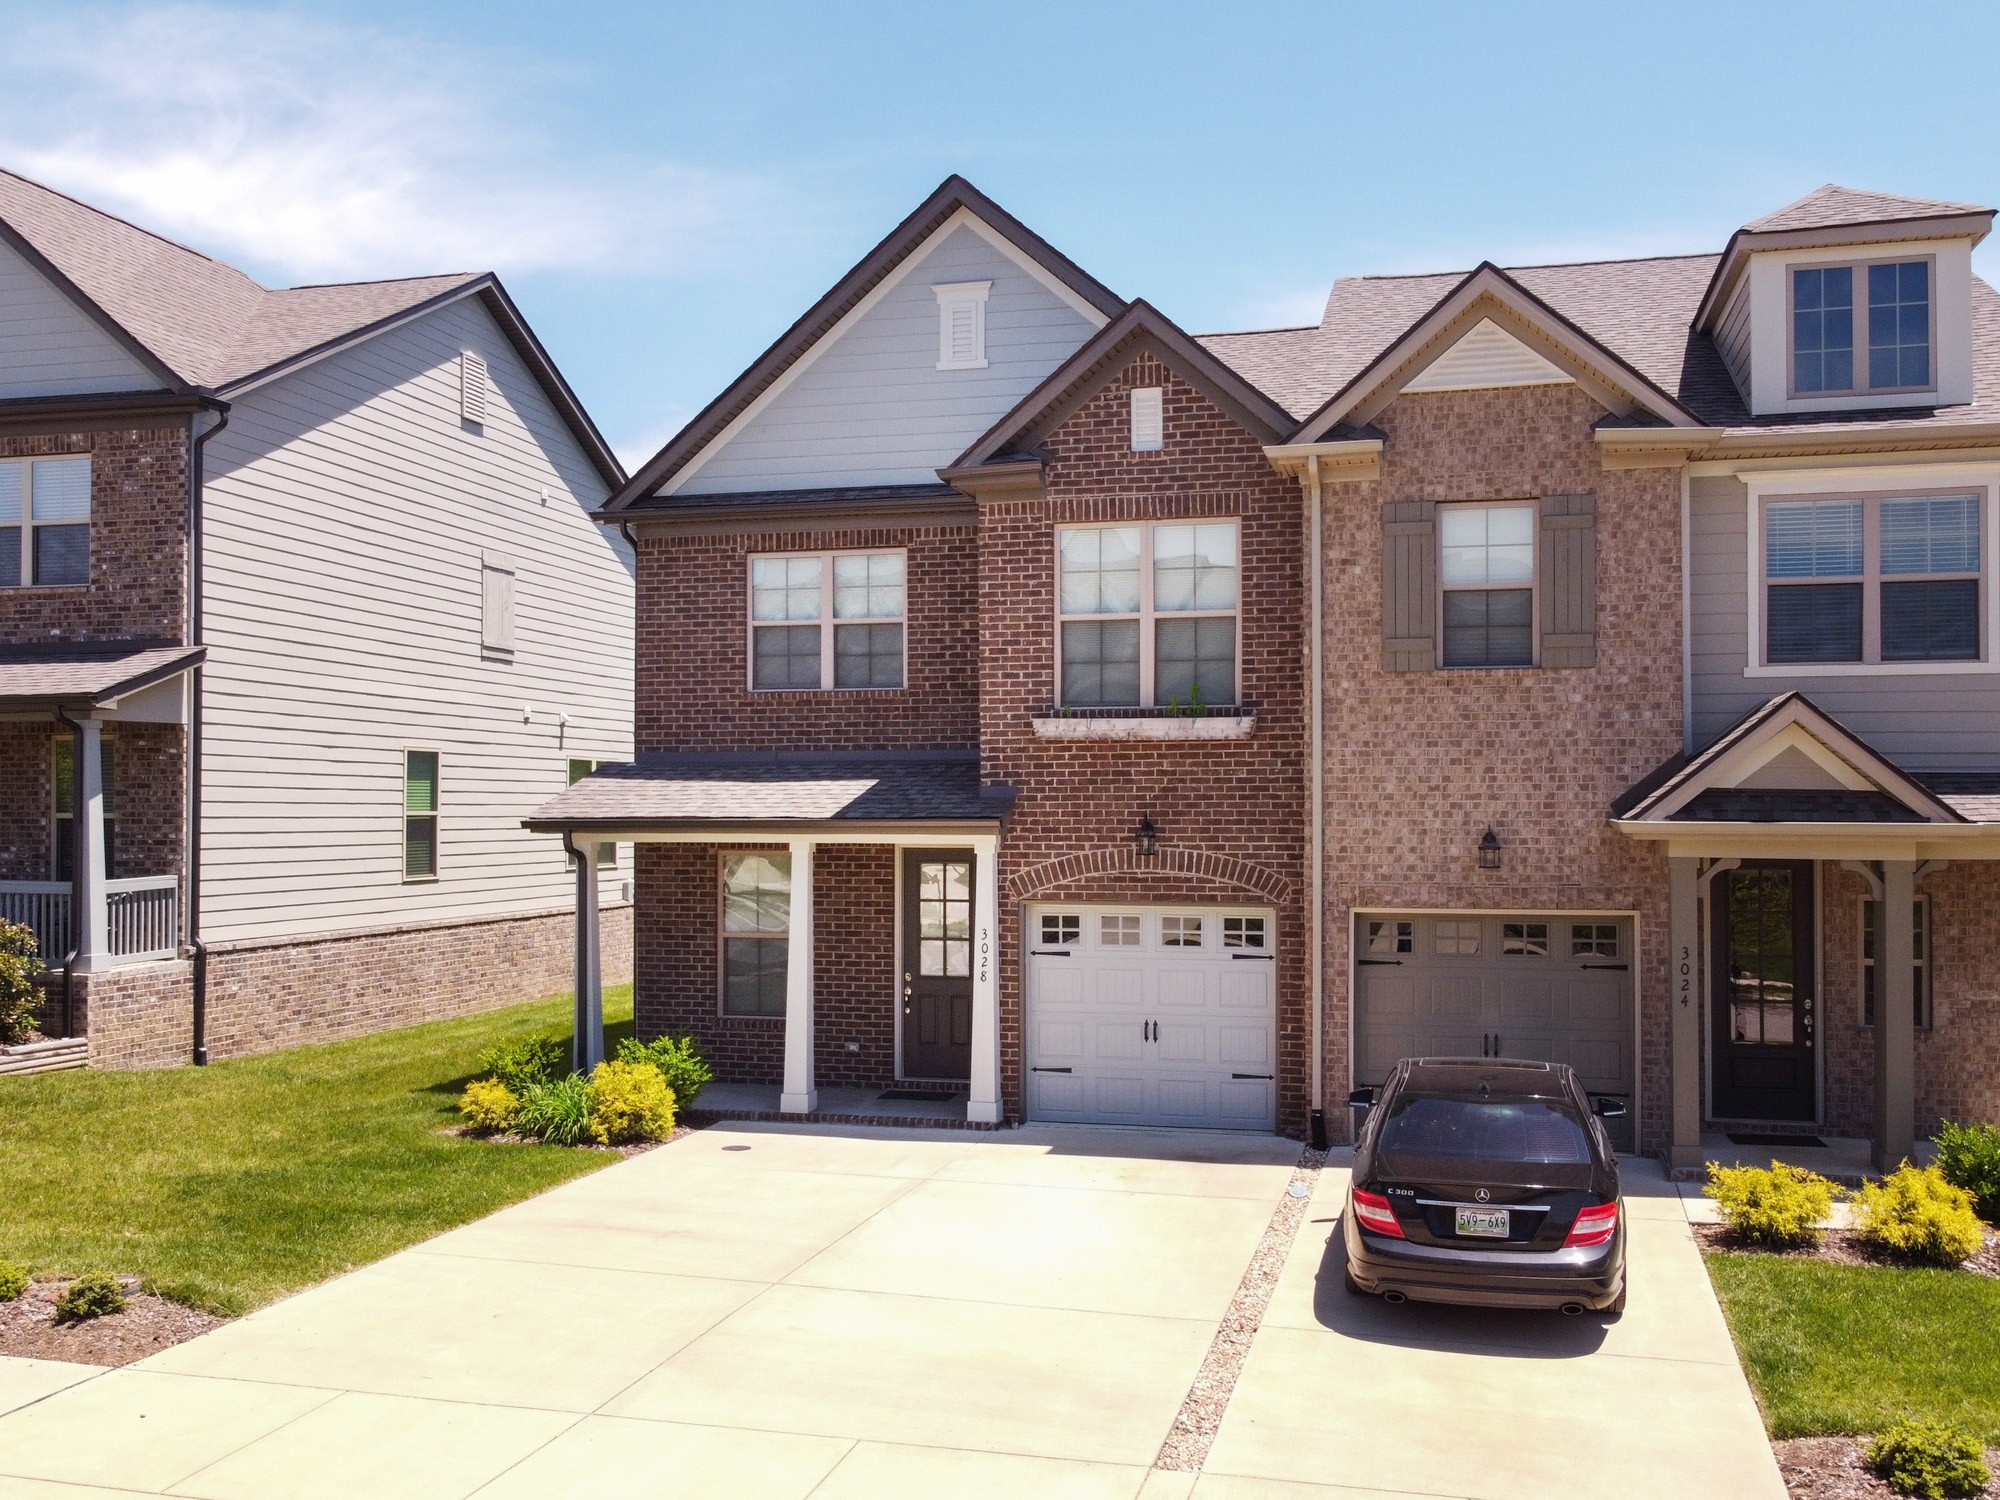 Desireable End Unit Townhome with Master Bedroom Down. This one is packed with upgrades such as widened driveway, enlarged back patio, covered back patio, wood floors on first floor and stairs, and an upgraded backsplash. Canterbury is an amazing community featuring a pool, playground, and it is located just minutes from Franklin.